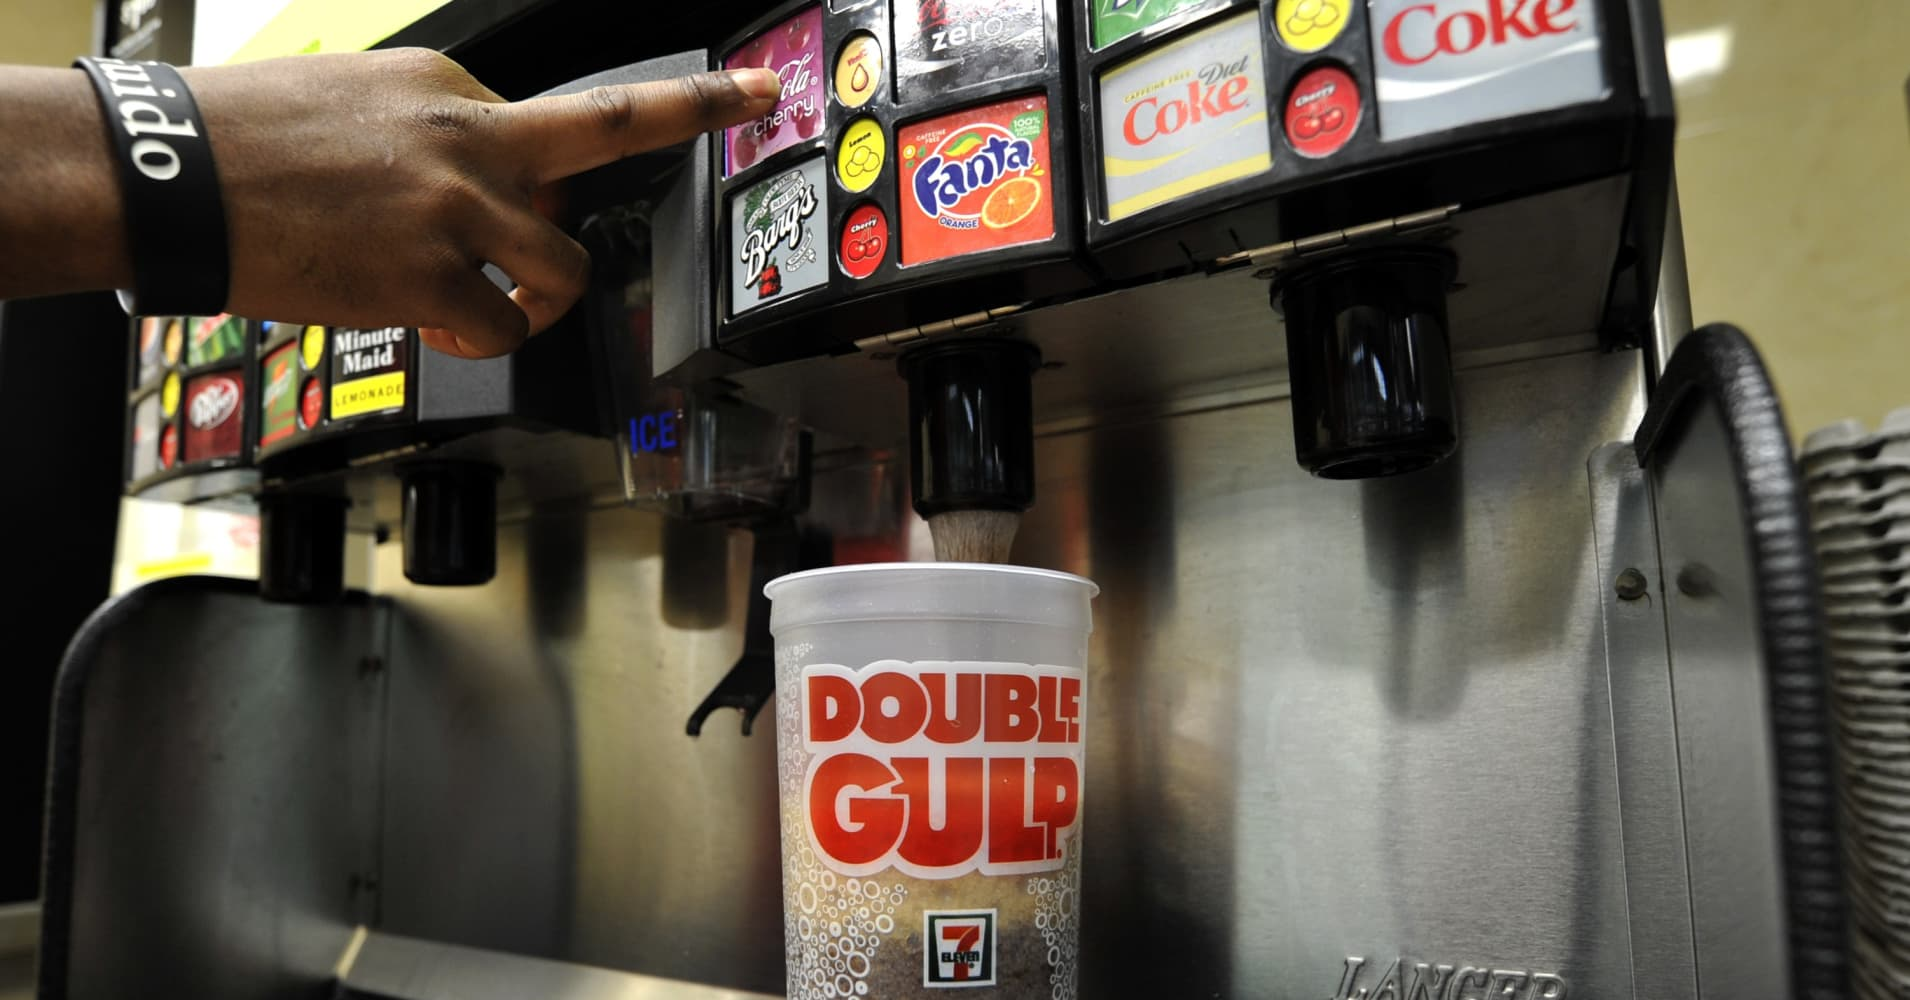 Cup Big Soda : Nyc s sugary drink ban battle puts restaurants in limbo